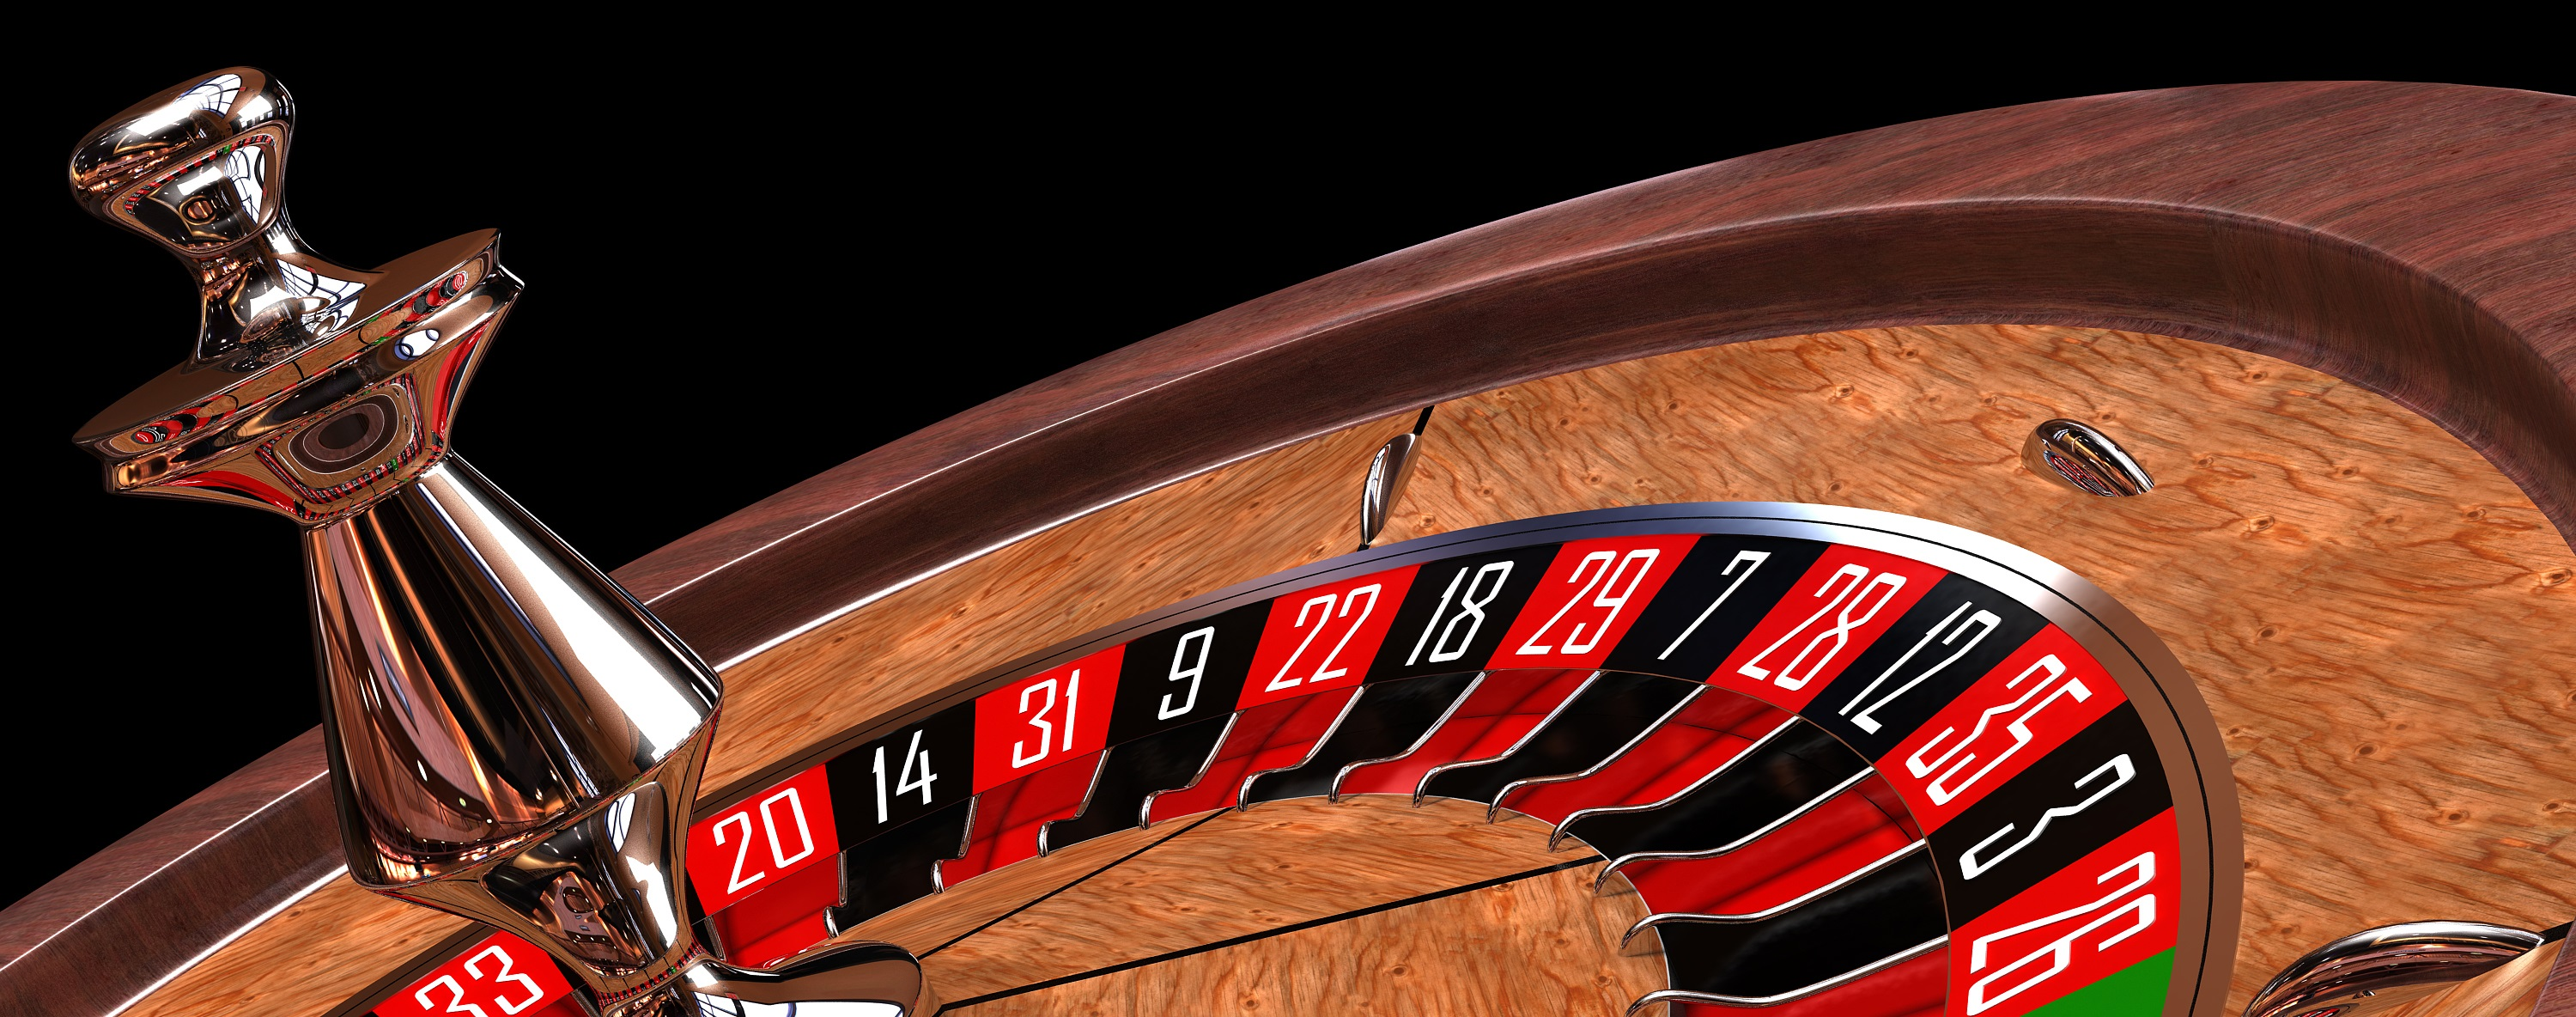 Best online casino fast payout